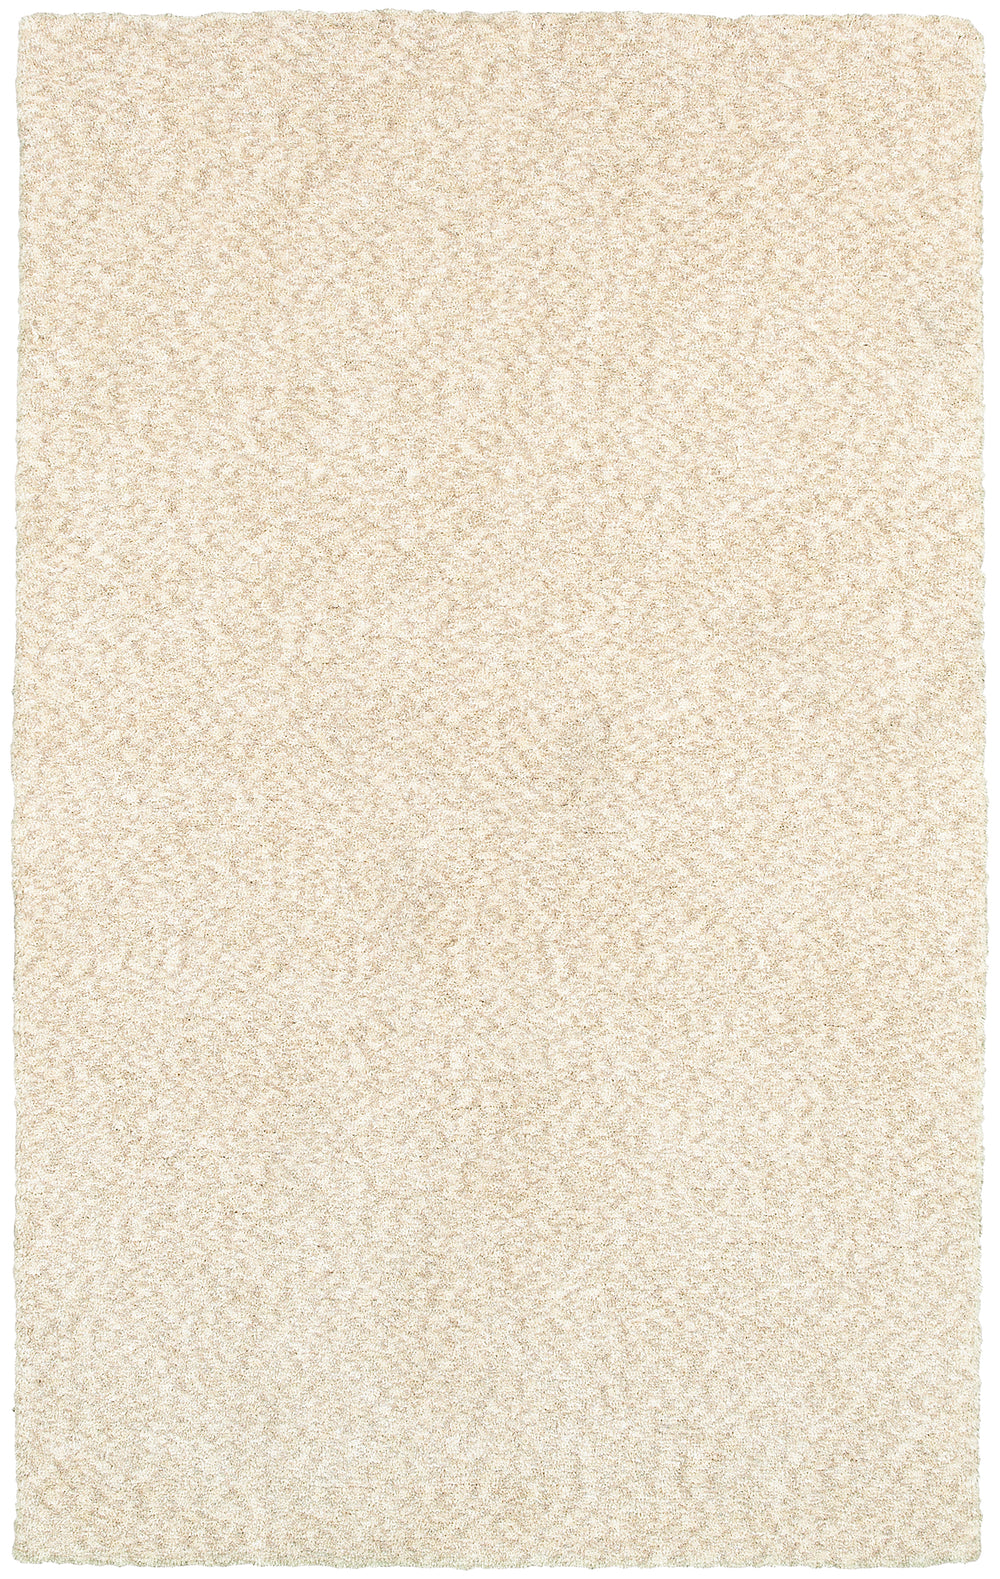 Oriental Weavers Heavenly 73402 Area Rug